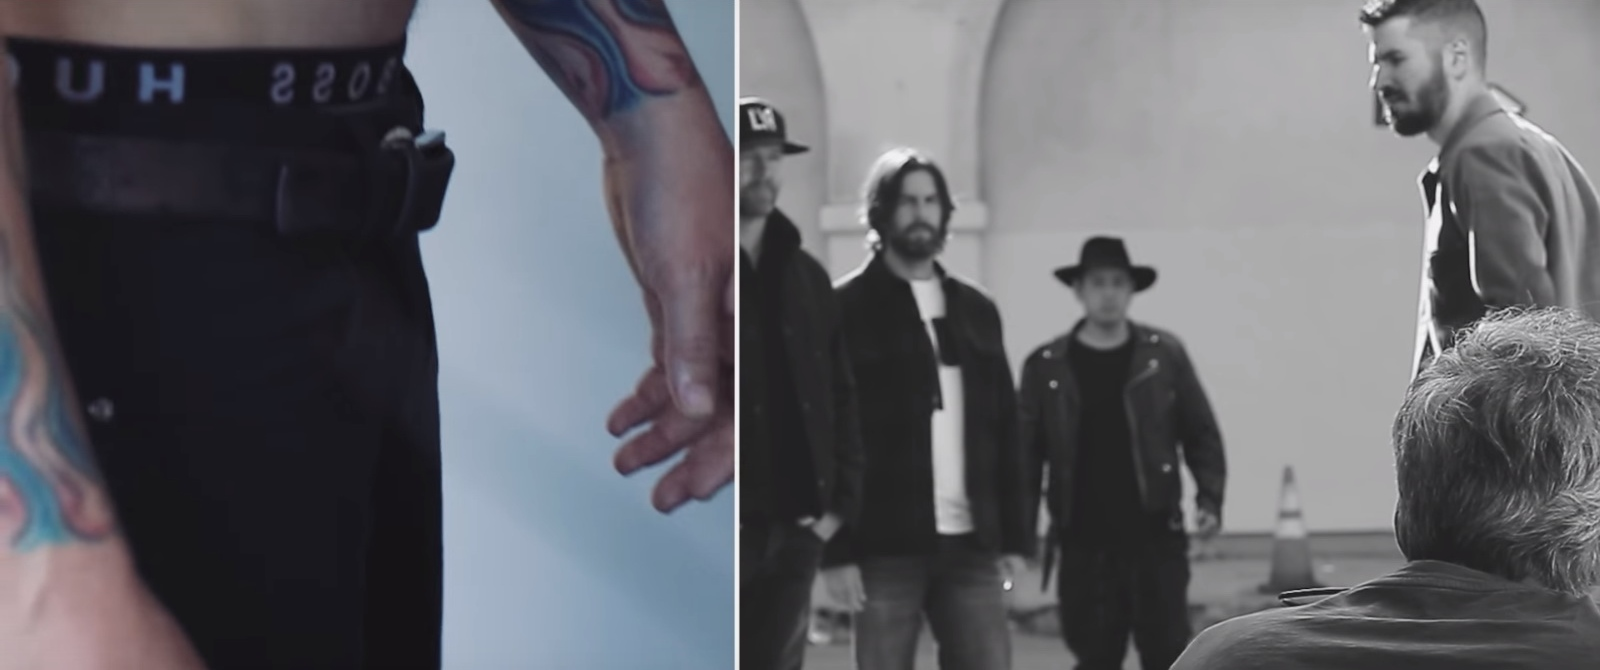 Hugo Boss Underwear - Linkin Park - Talking To Myself Official Music Video Product Placement